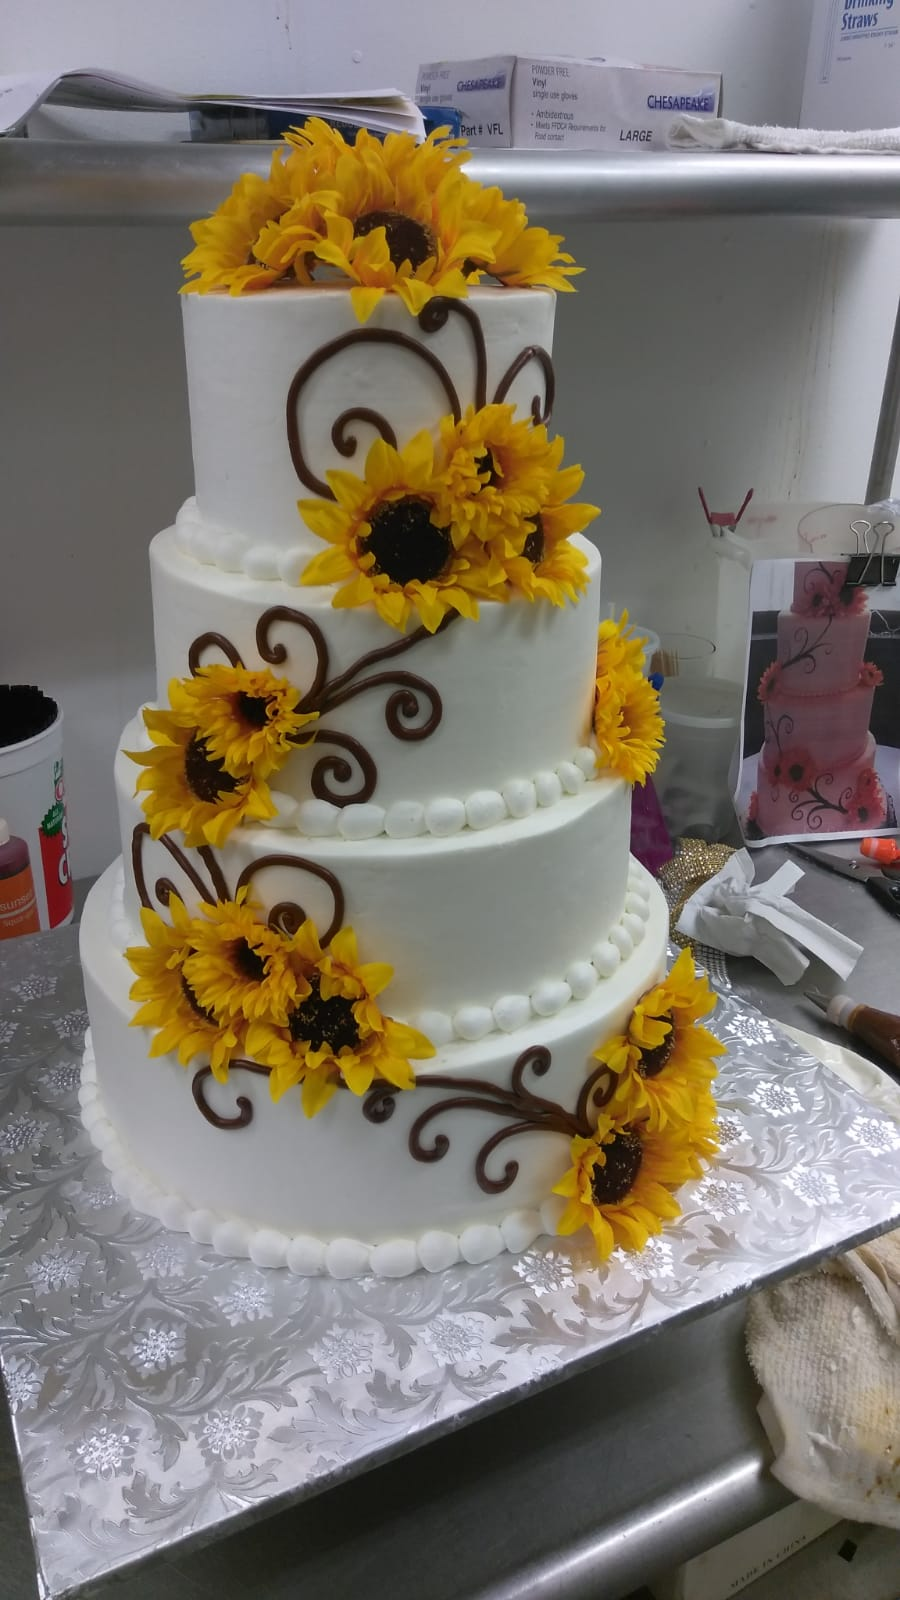 Tiered sunflower cake